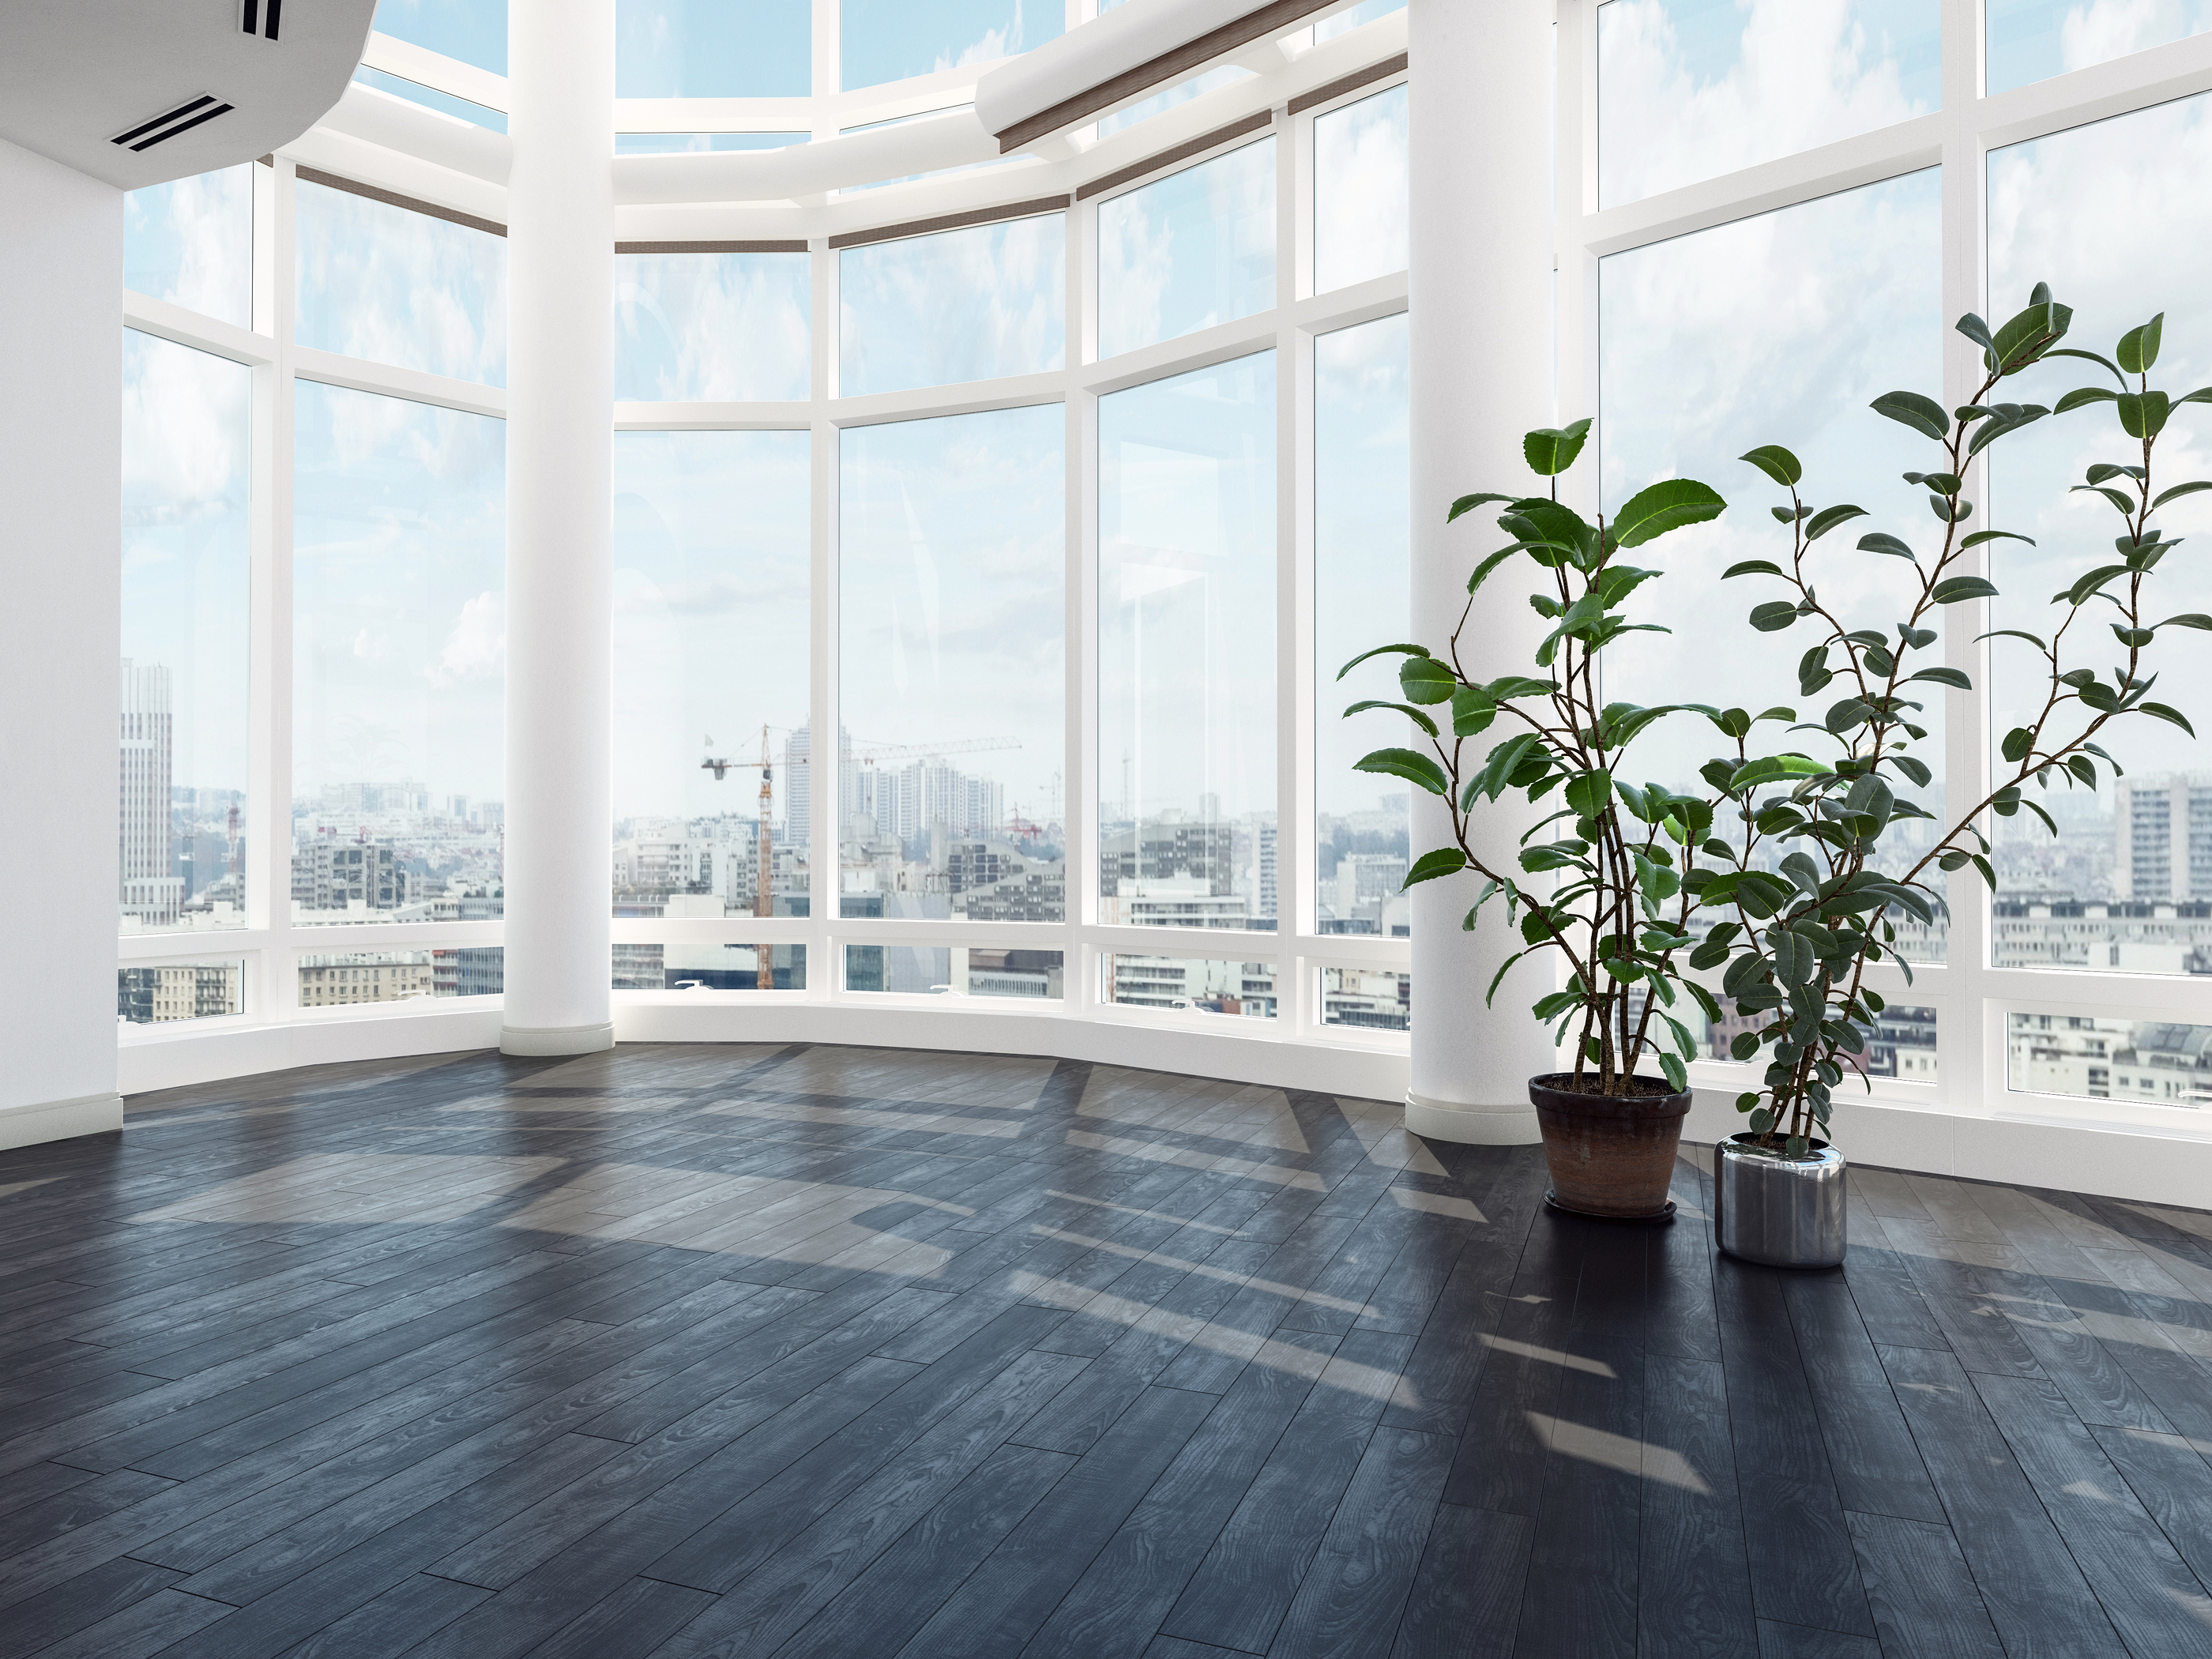 Empty vacant modern luxury apartment or penthouse interior with large curved view windows overlookin